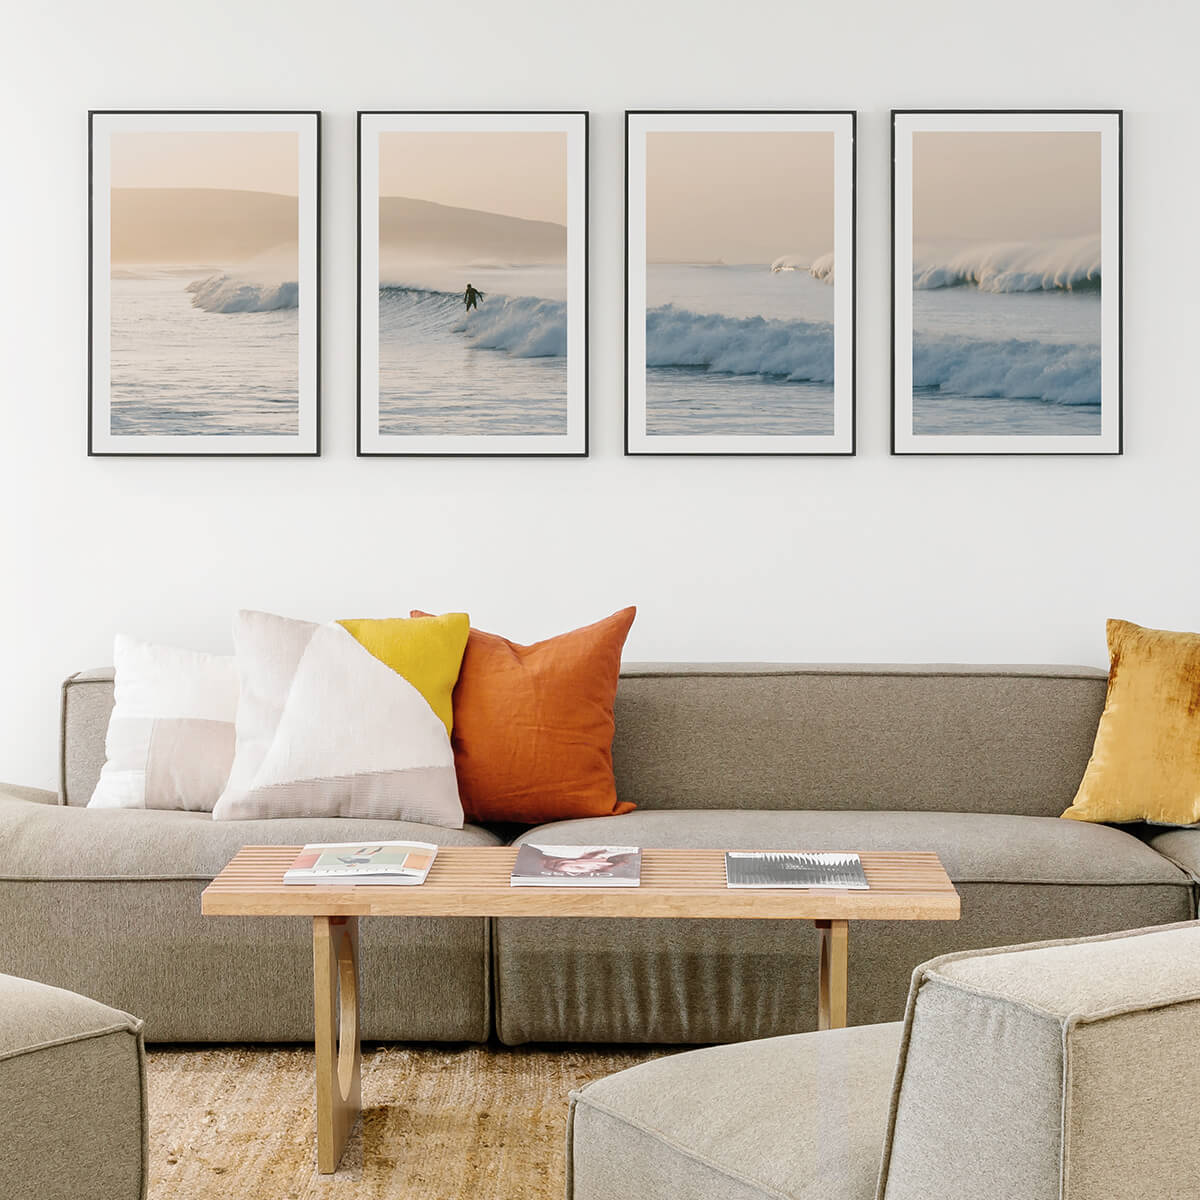 Surfing landscape photo split into four frames hanging above couch